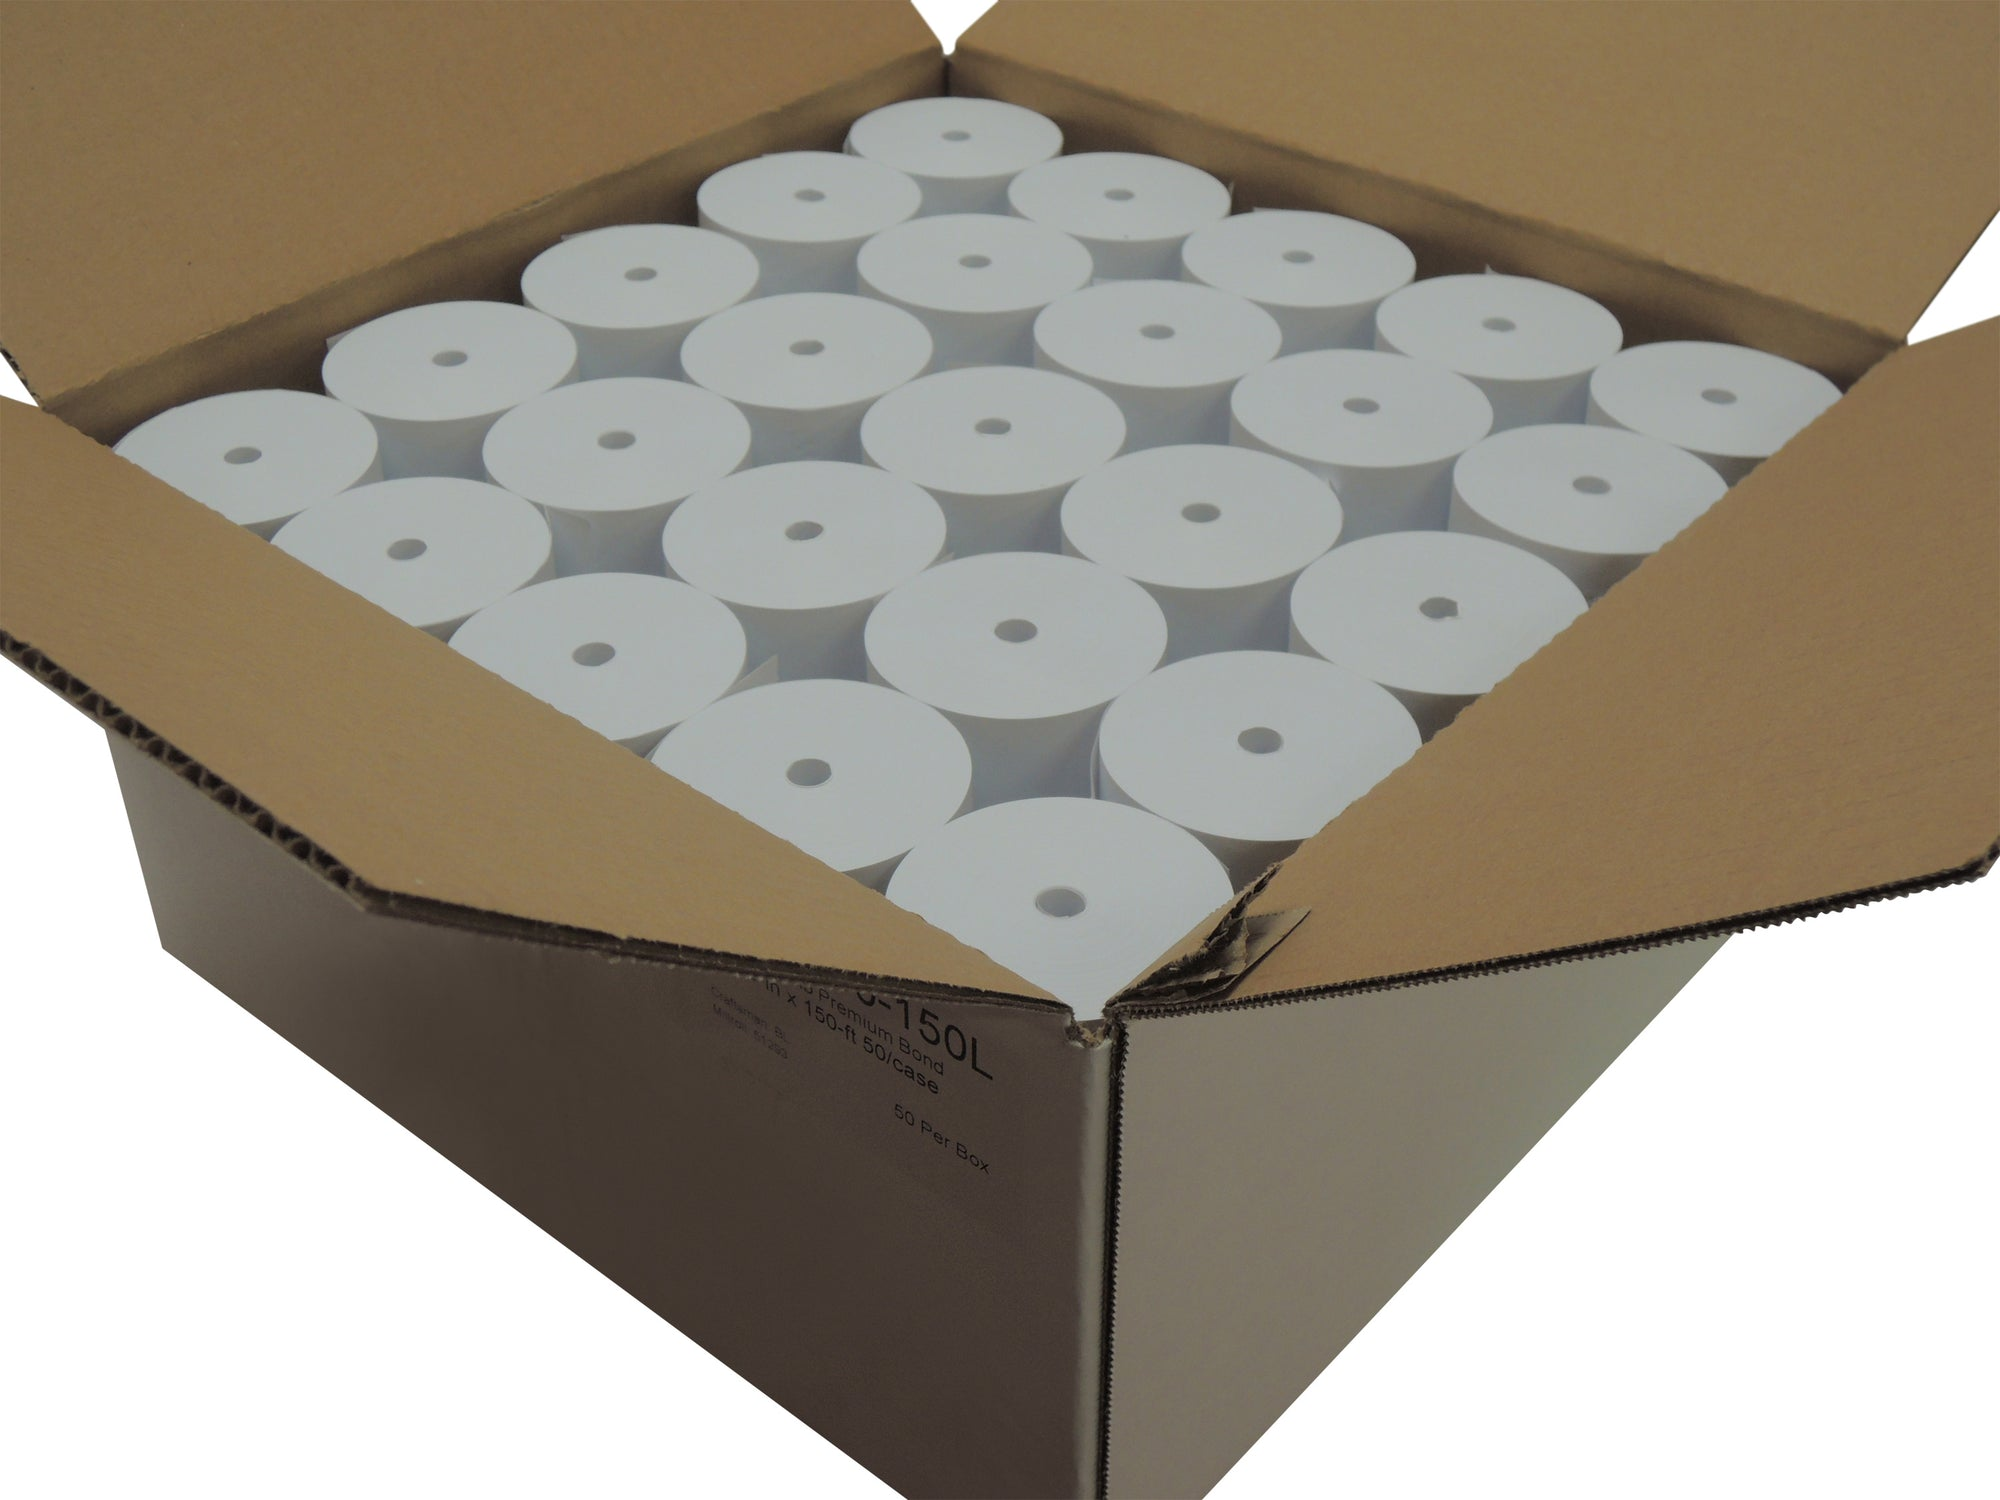 2 1/4 x 150 ft 1 Ply Bond bright white 50 rolls